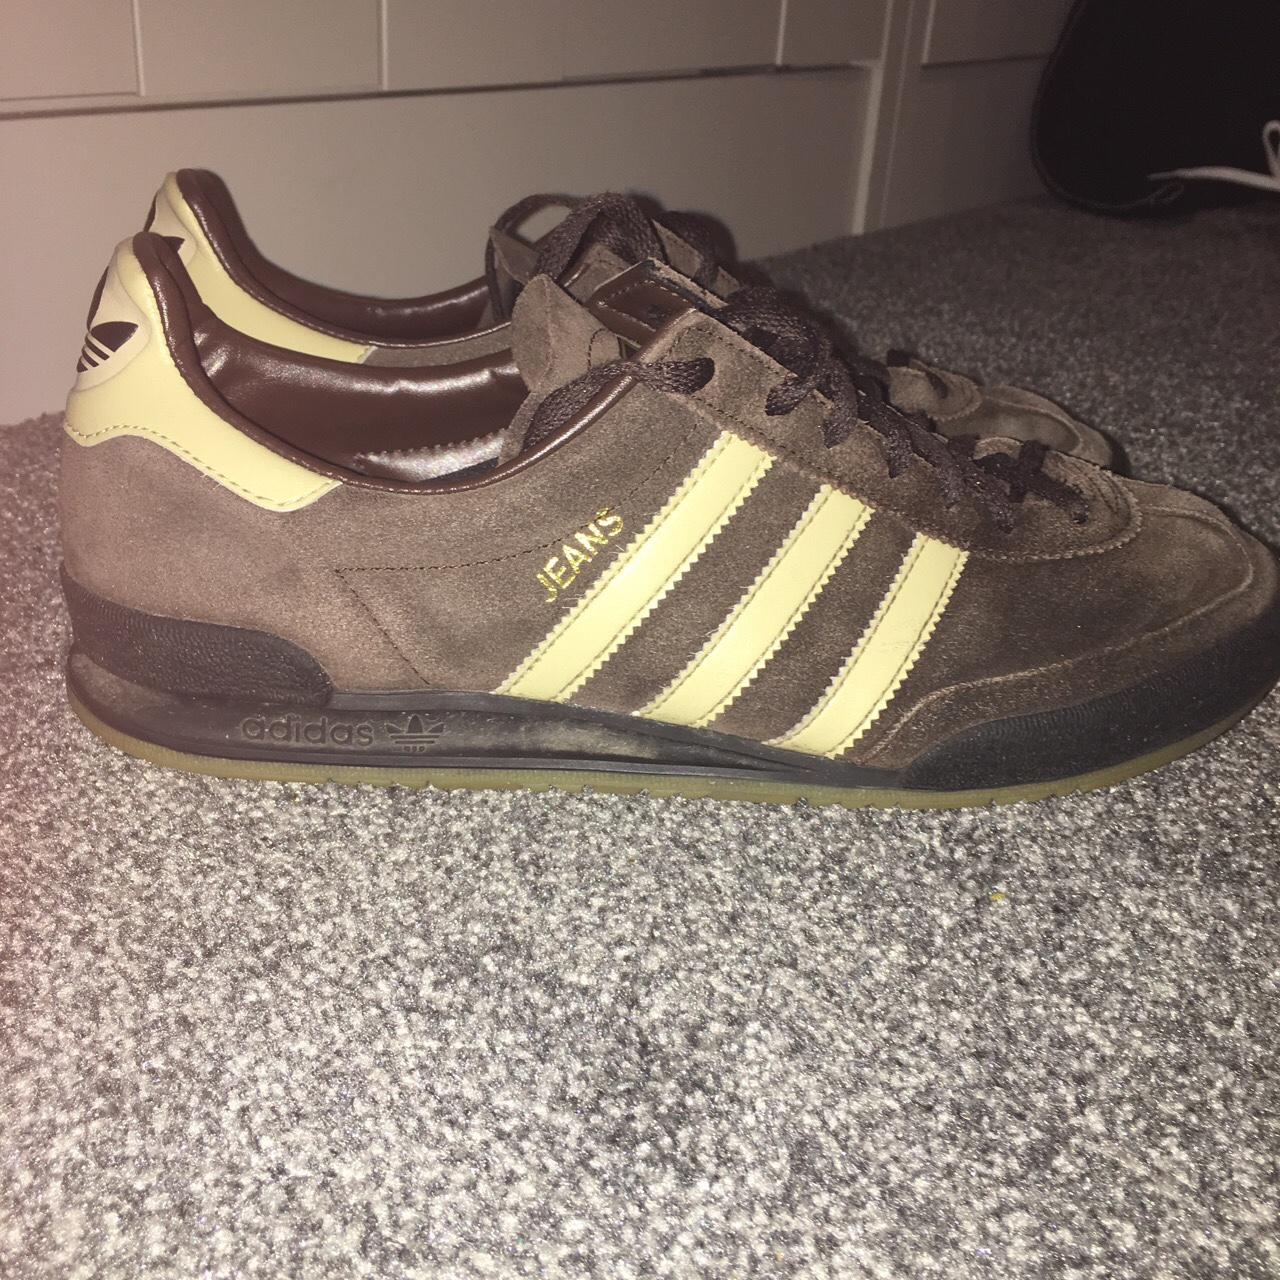 Adidas Jeans Size 9 - 7/10 condition